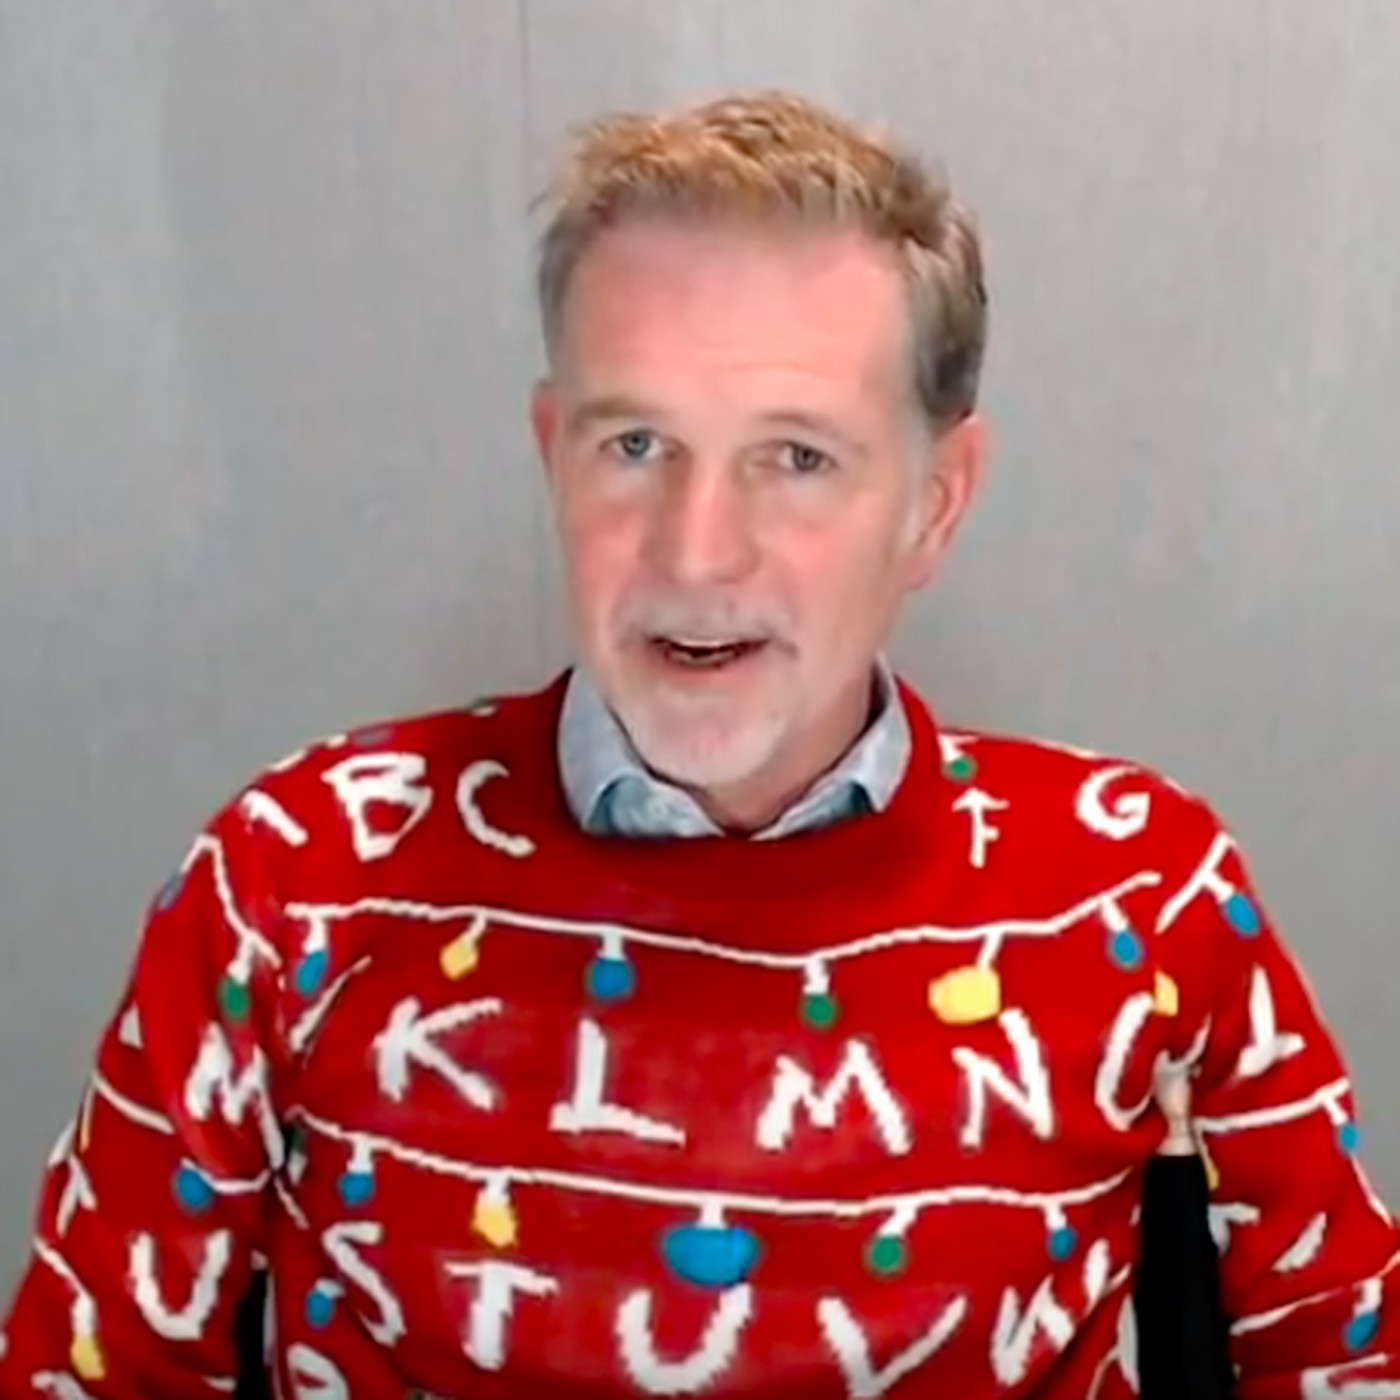 Netflixs Reed Hastings Wore A Stranger Things Sweater On An